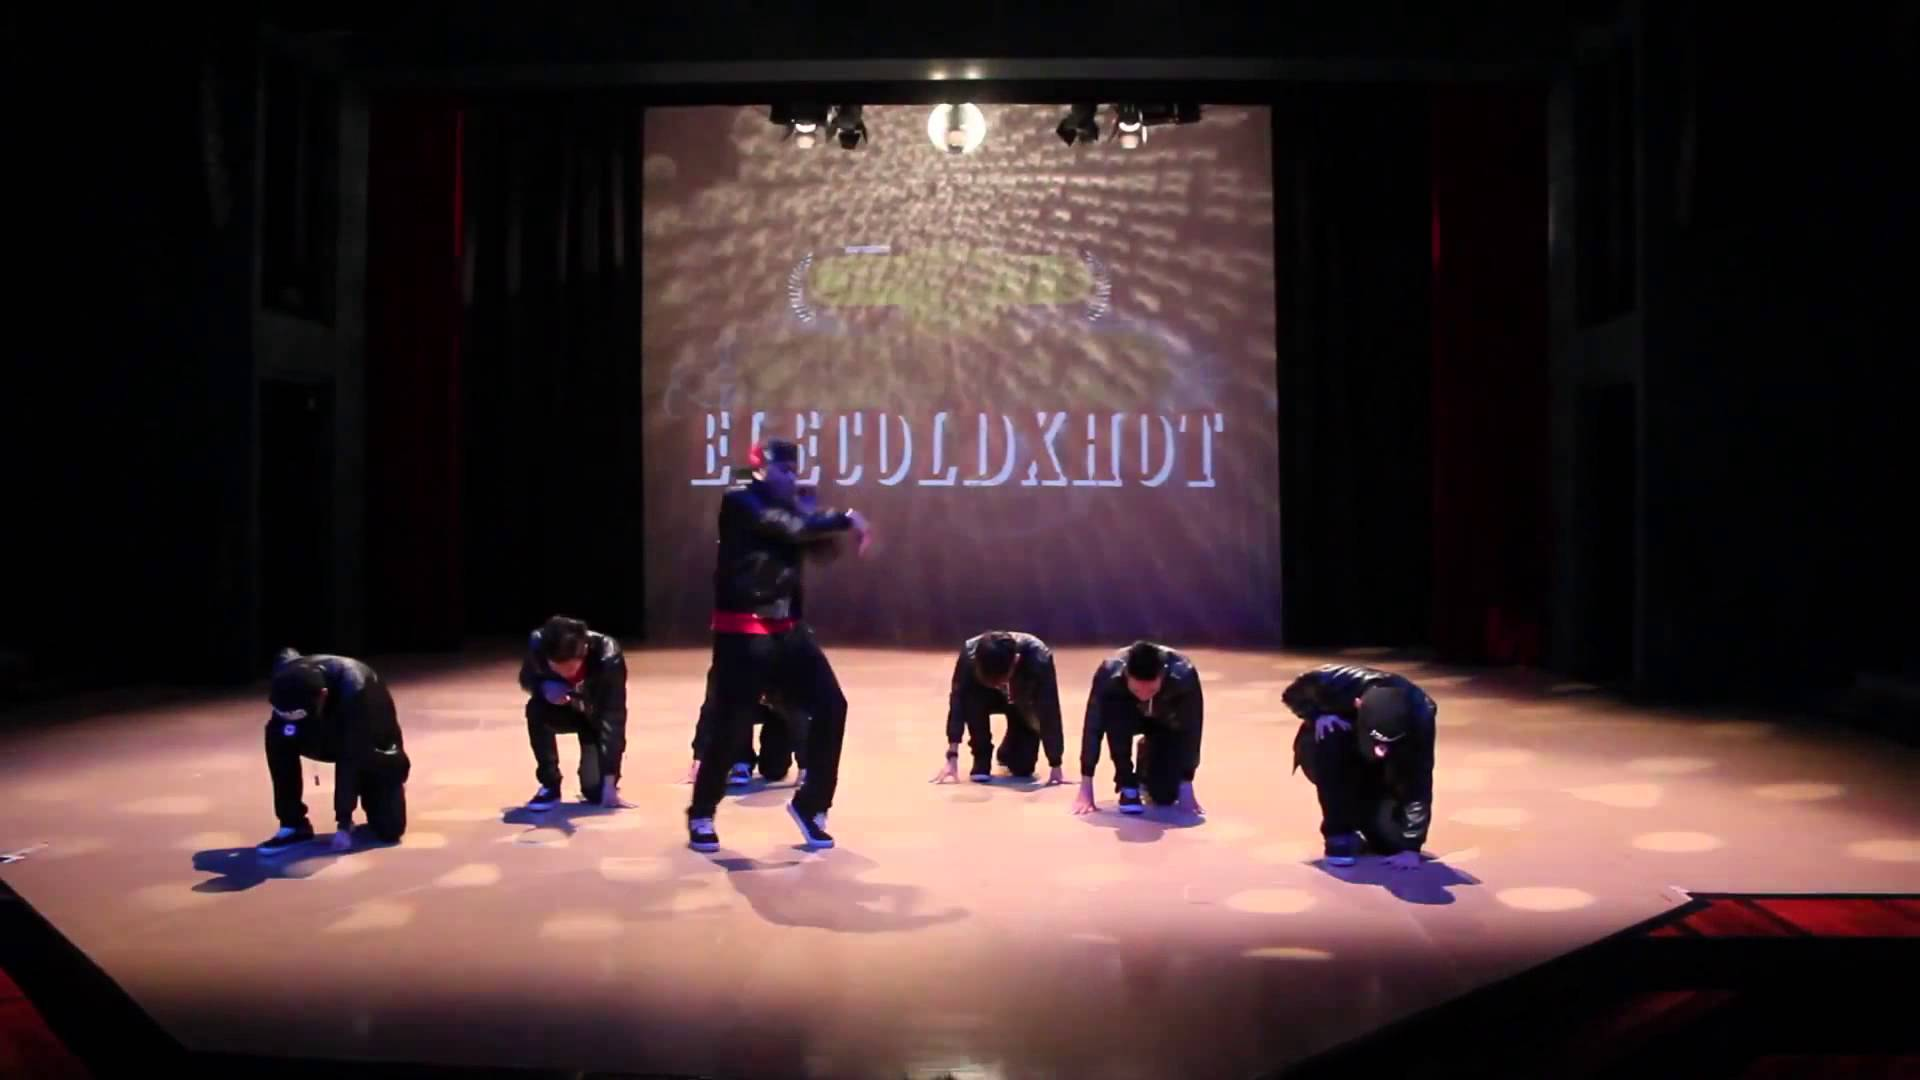 Elecoldxhot: HipHop Dance Performance